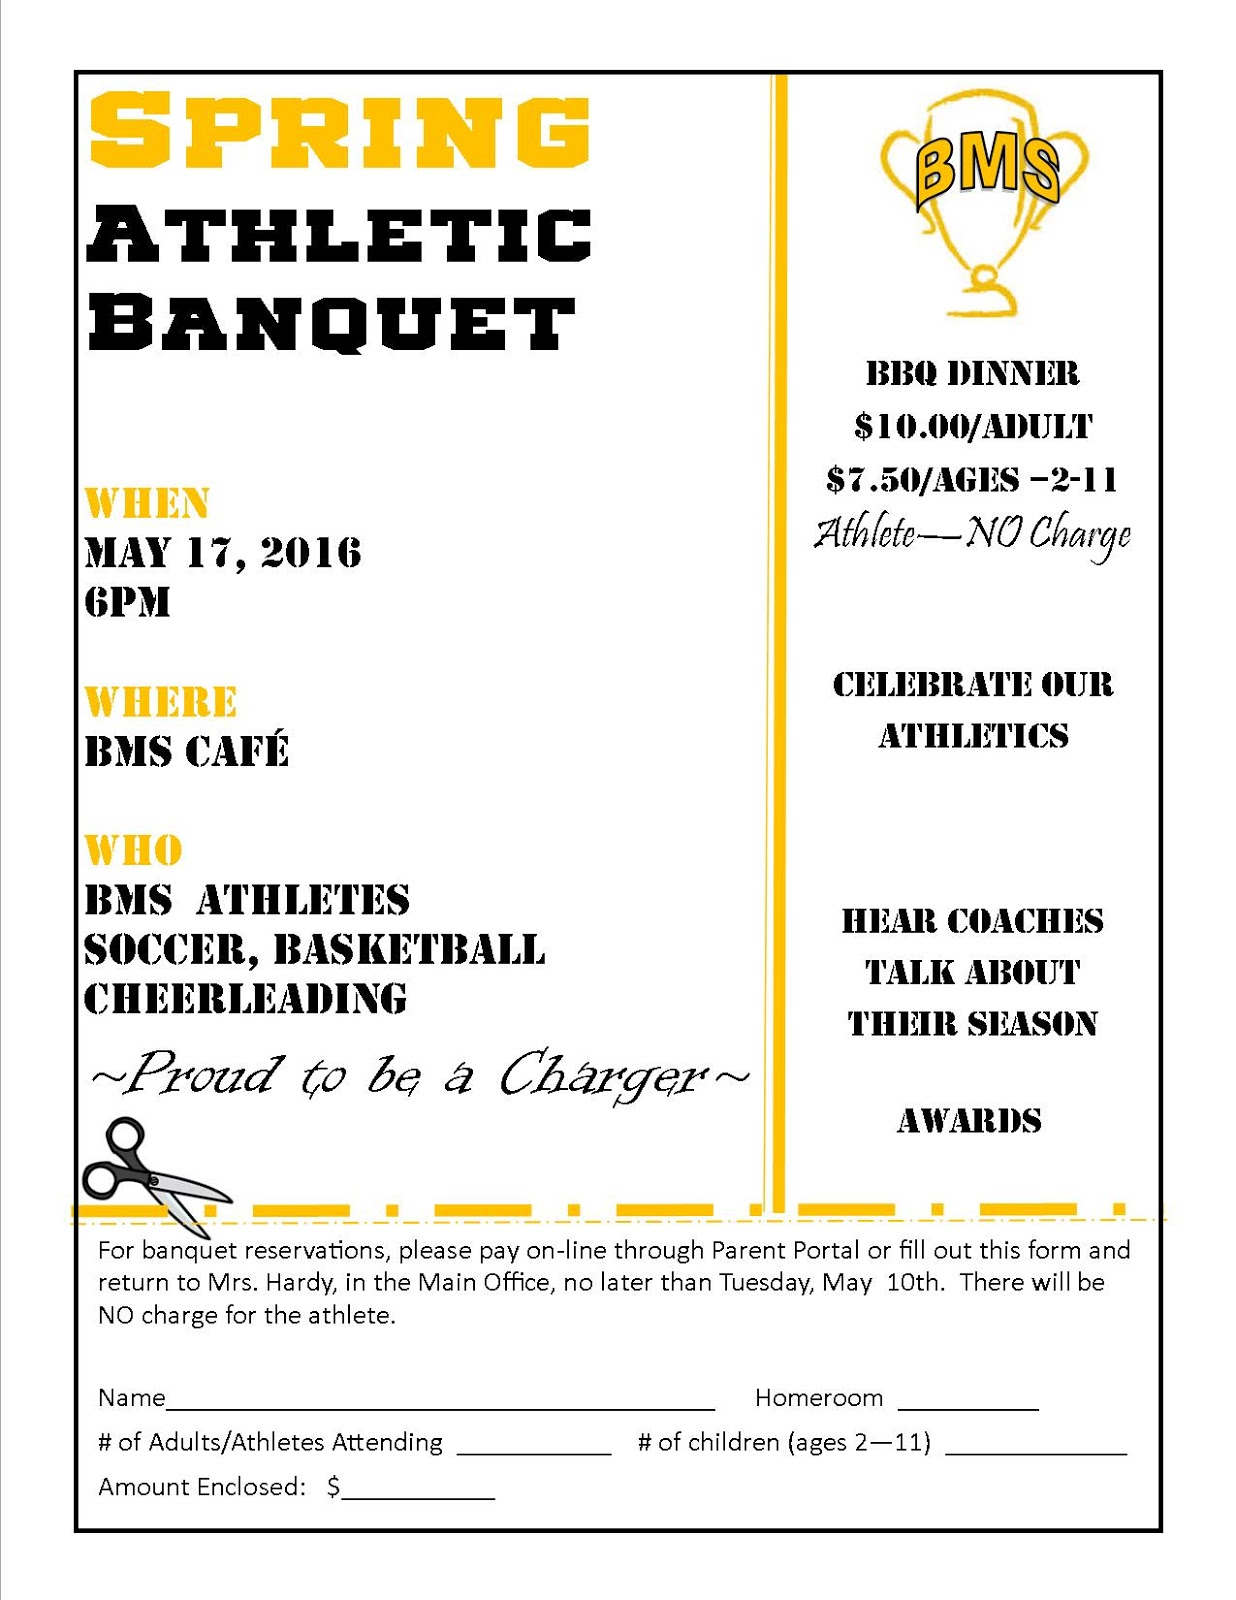 Athletic banquet program template gallery template for Sports program template free